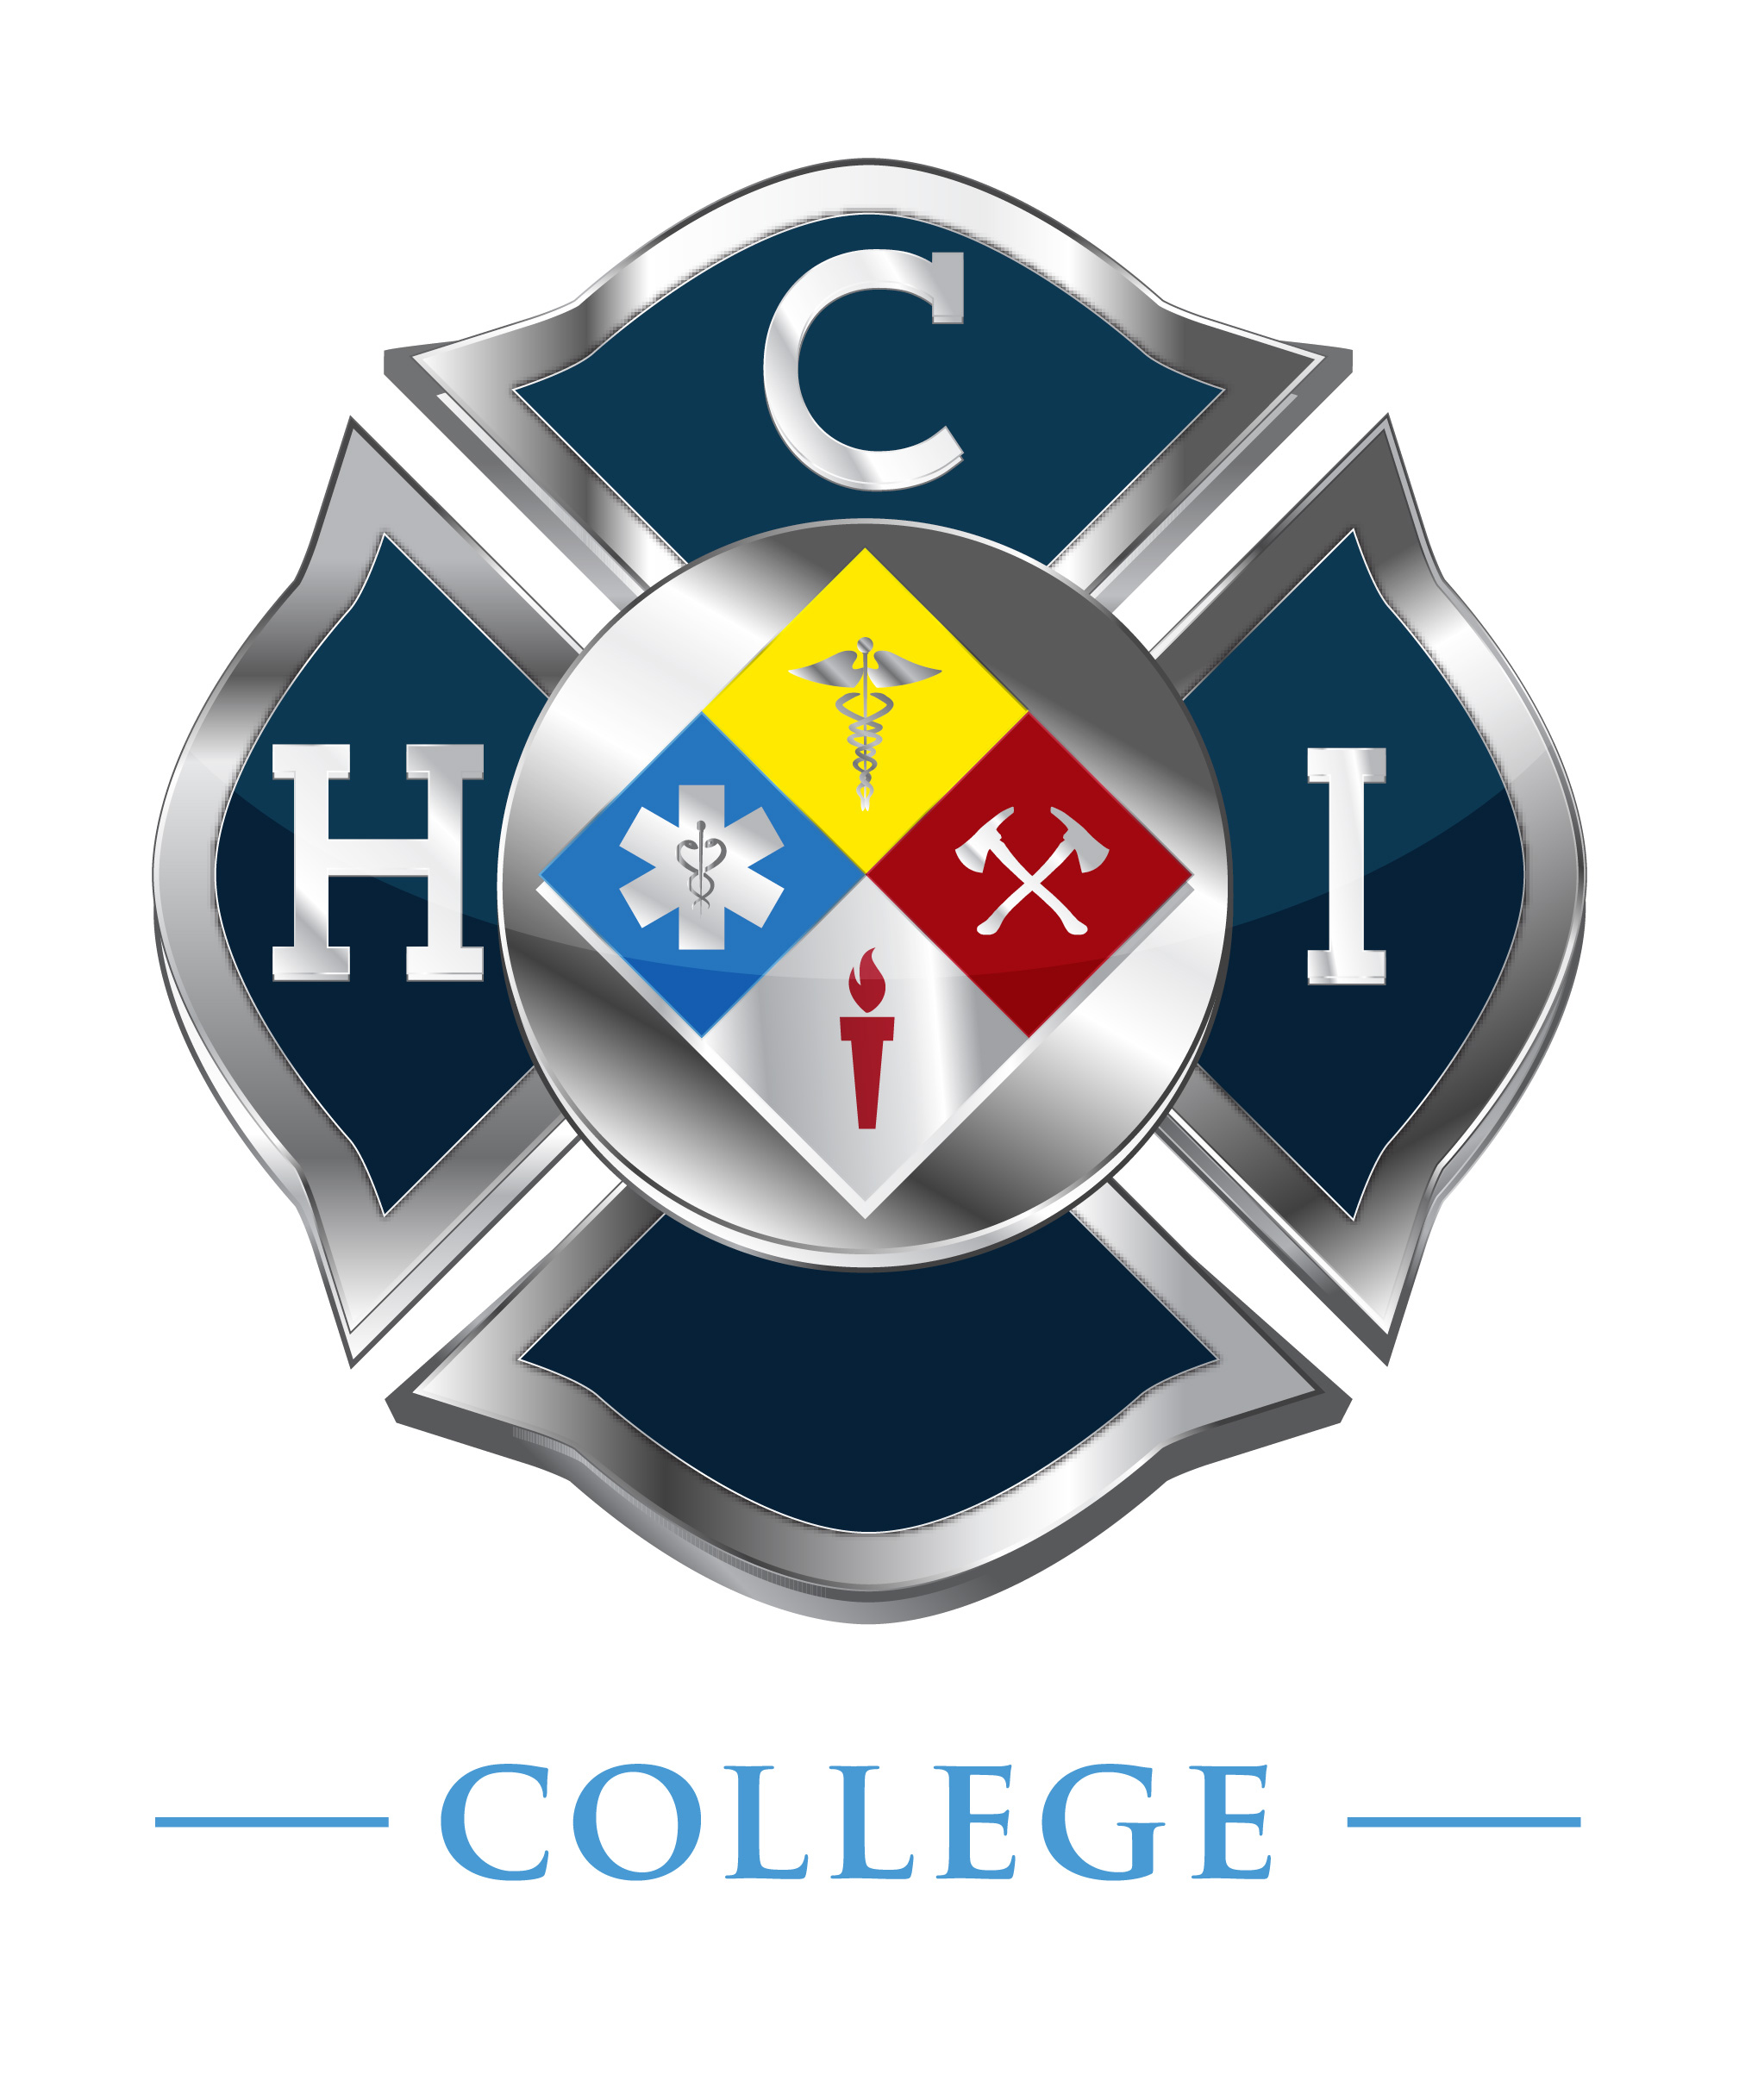 HCI College Announces Official Name Change